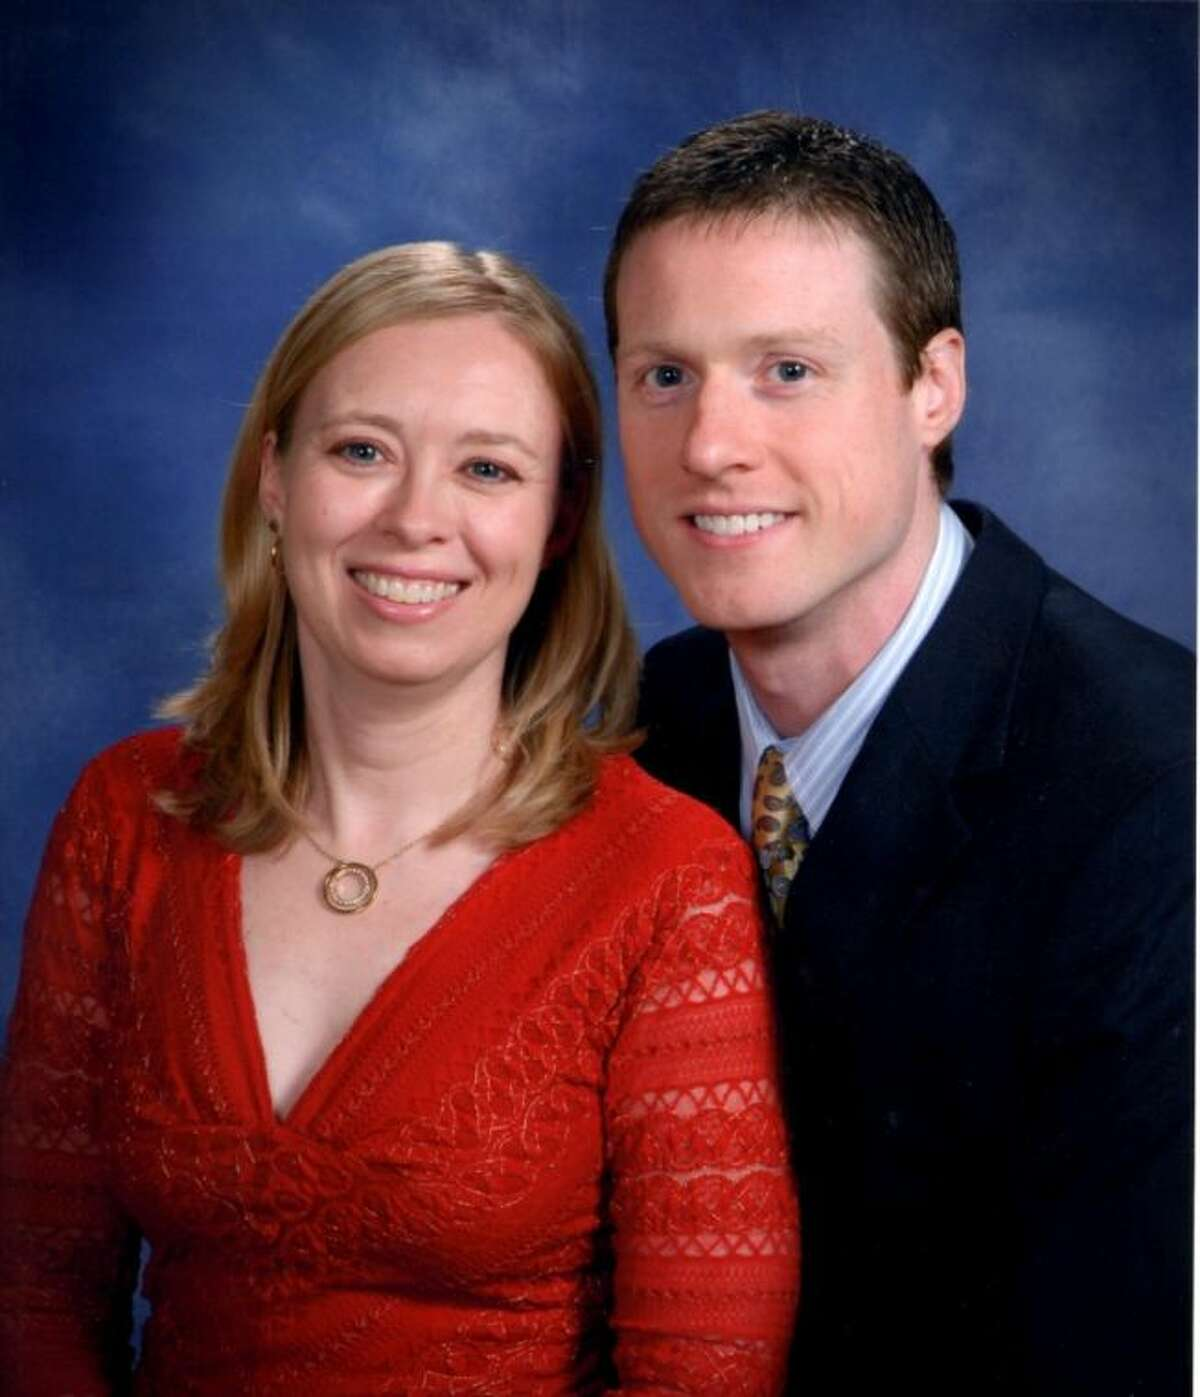 Timothy Holt is the new pastor for Atascocita Lutheran Church. He is joined with his wife Kaia Holt. They recently moved to Atascocita to lead the congregation.